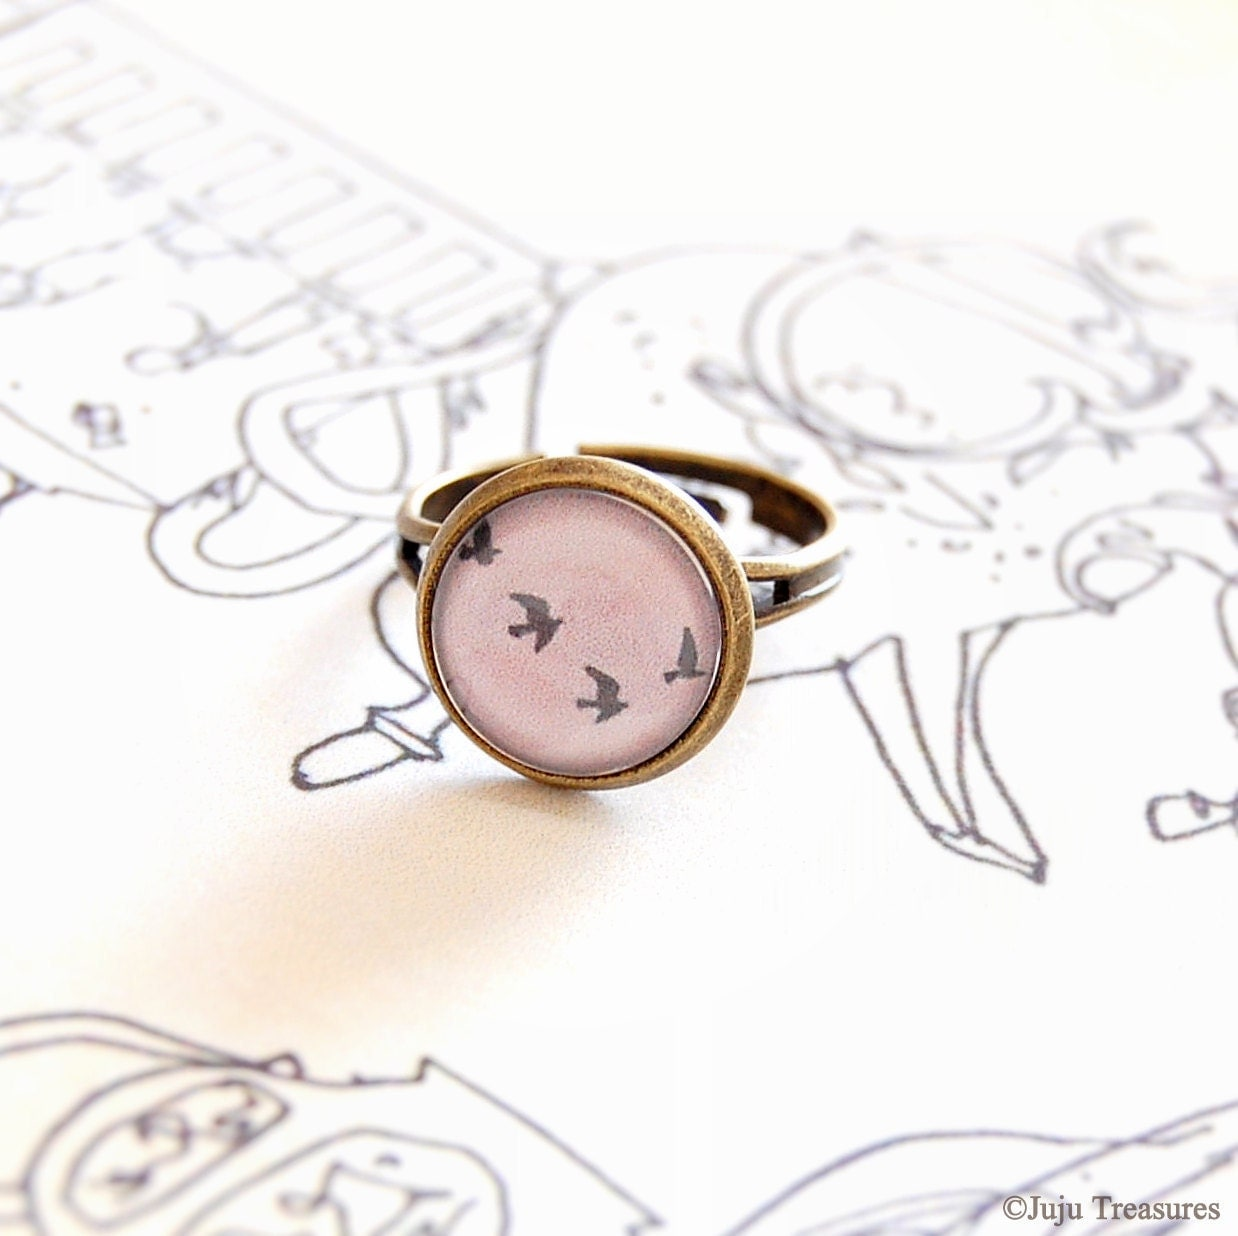 Flock of Birds Adjustable Ring... Pink, Grey, Glass Dome, Antique Brass... - JujuTreasures